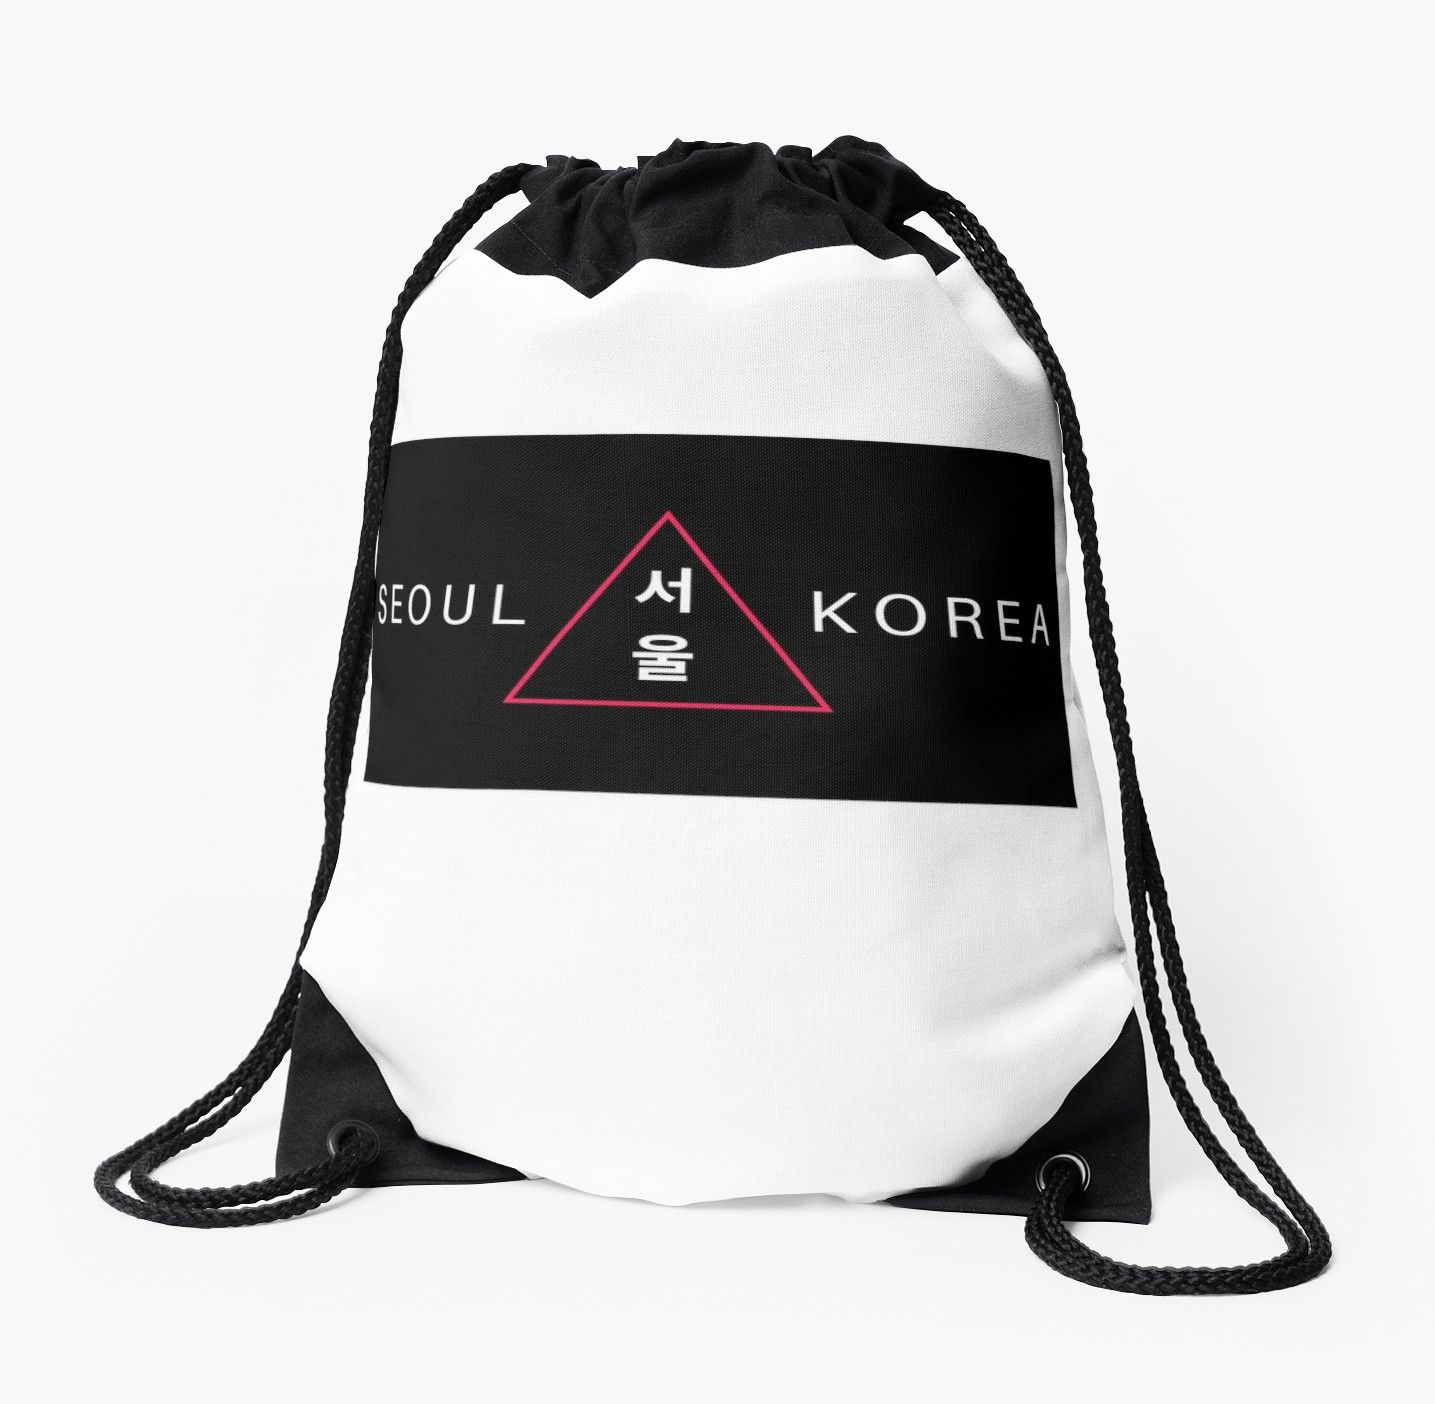 Seoul Korea South Korea Black Red Drawstring Bag By Rtsm In 2021 Bags Classic Backpack Drawstring Bag